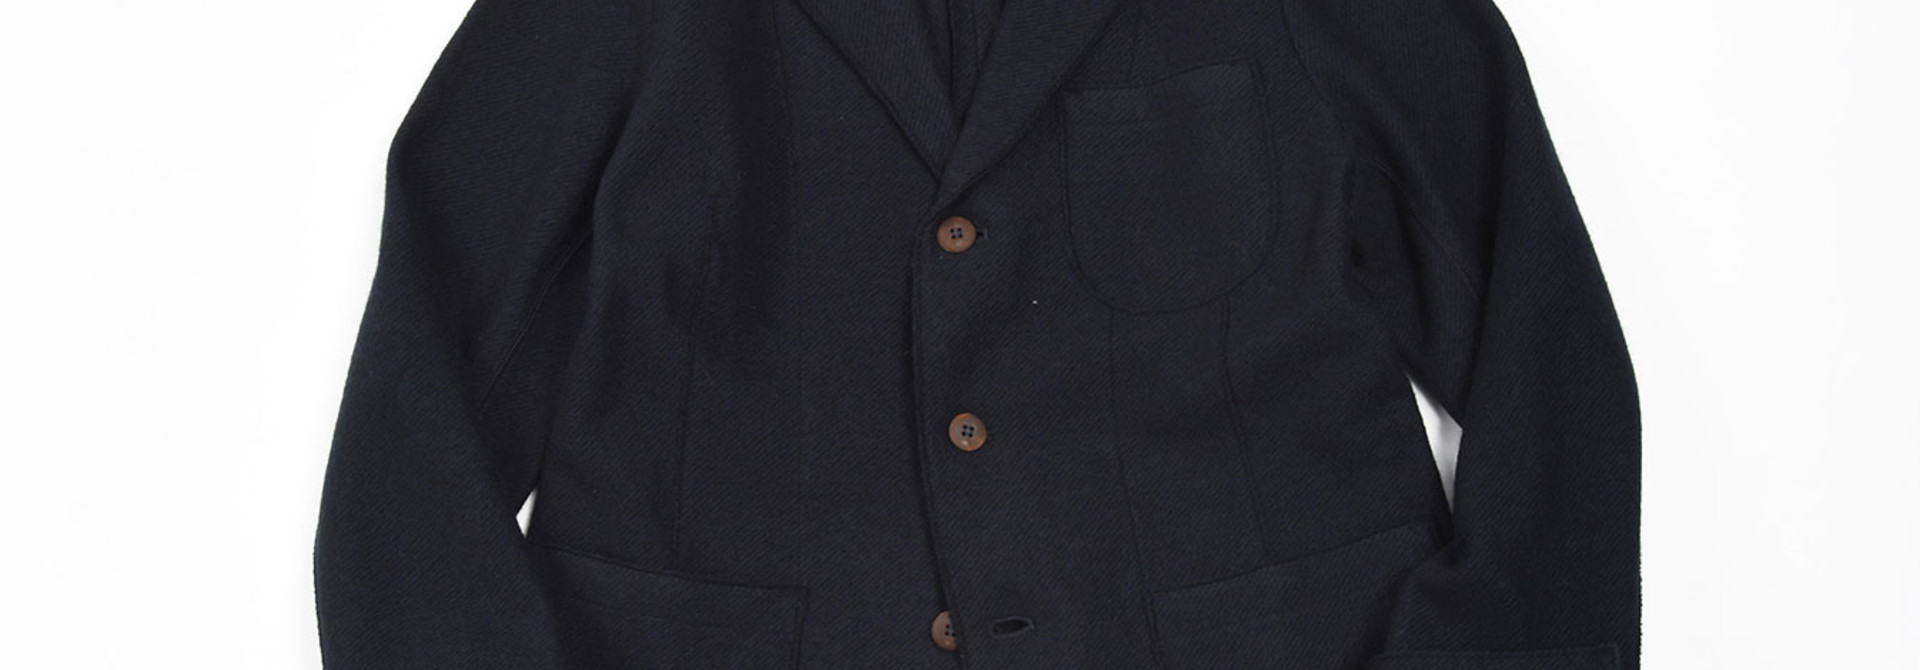 WH Jersey Flannel Jacket